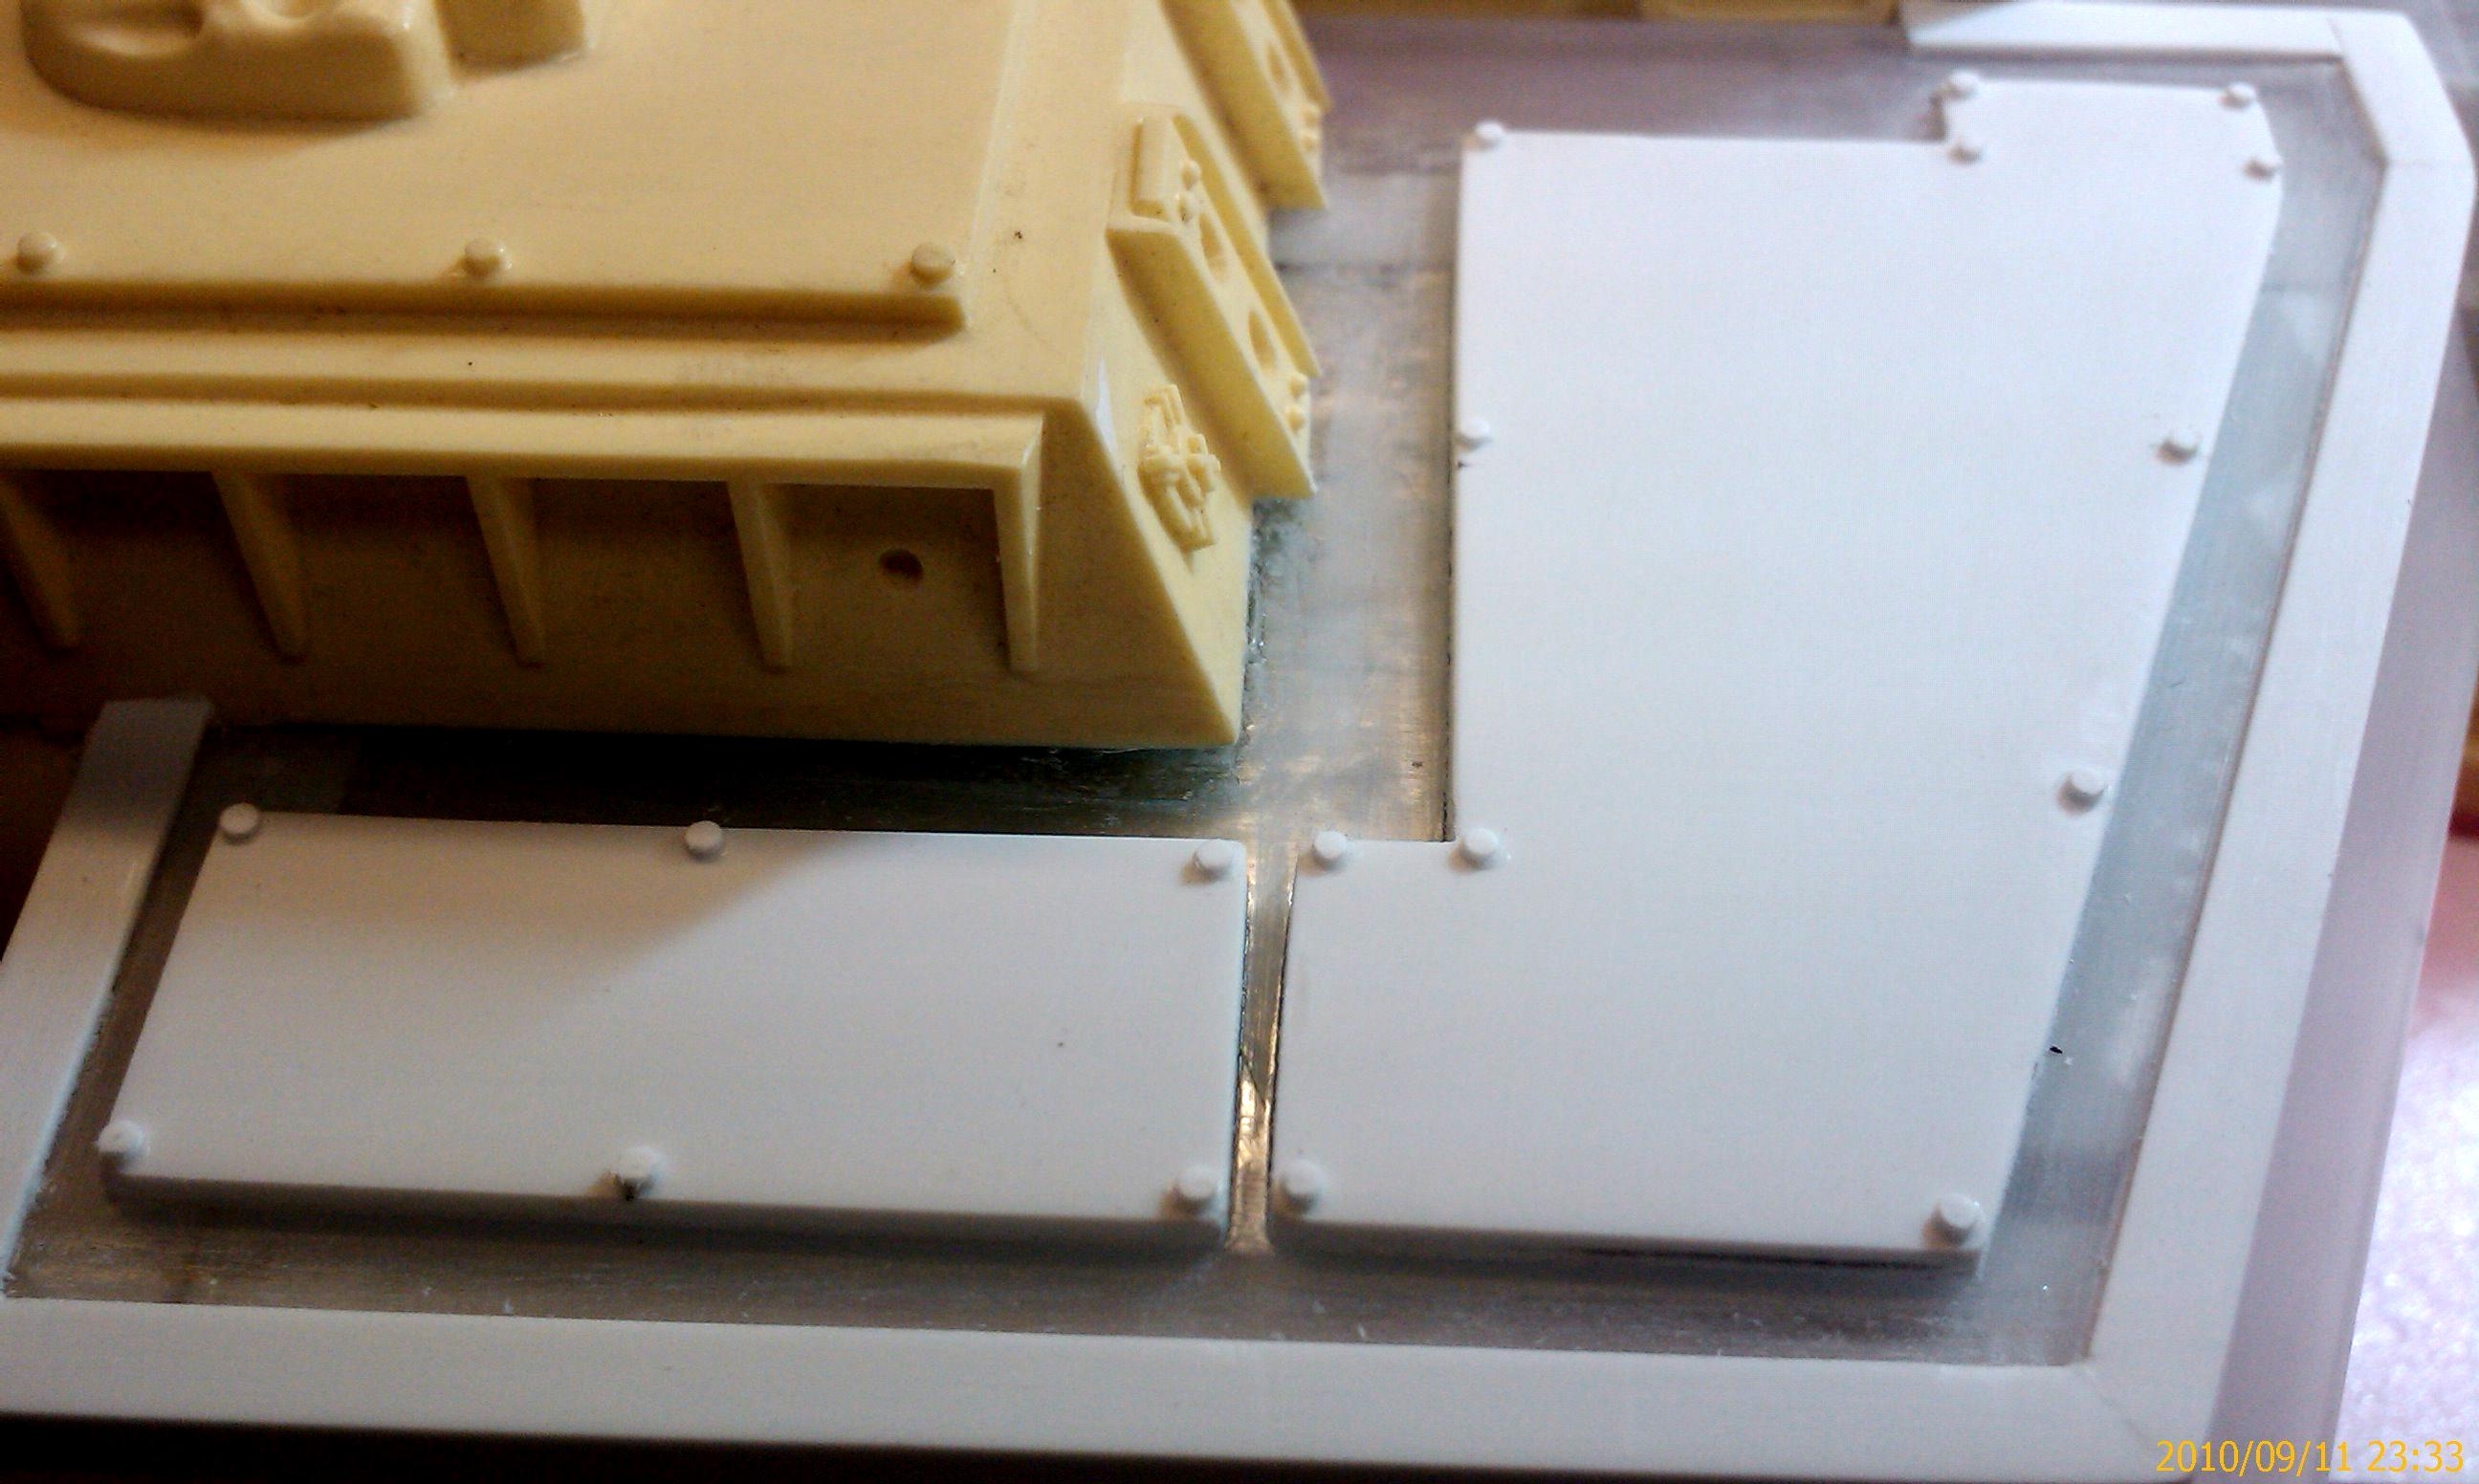 Roof armor riveted up close